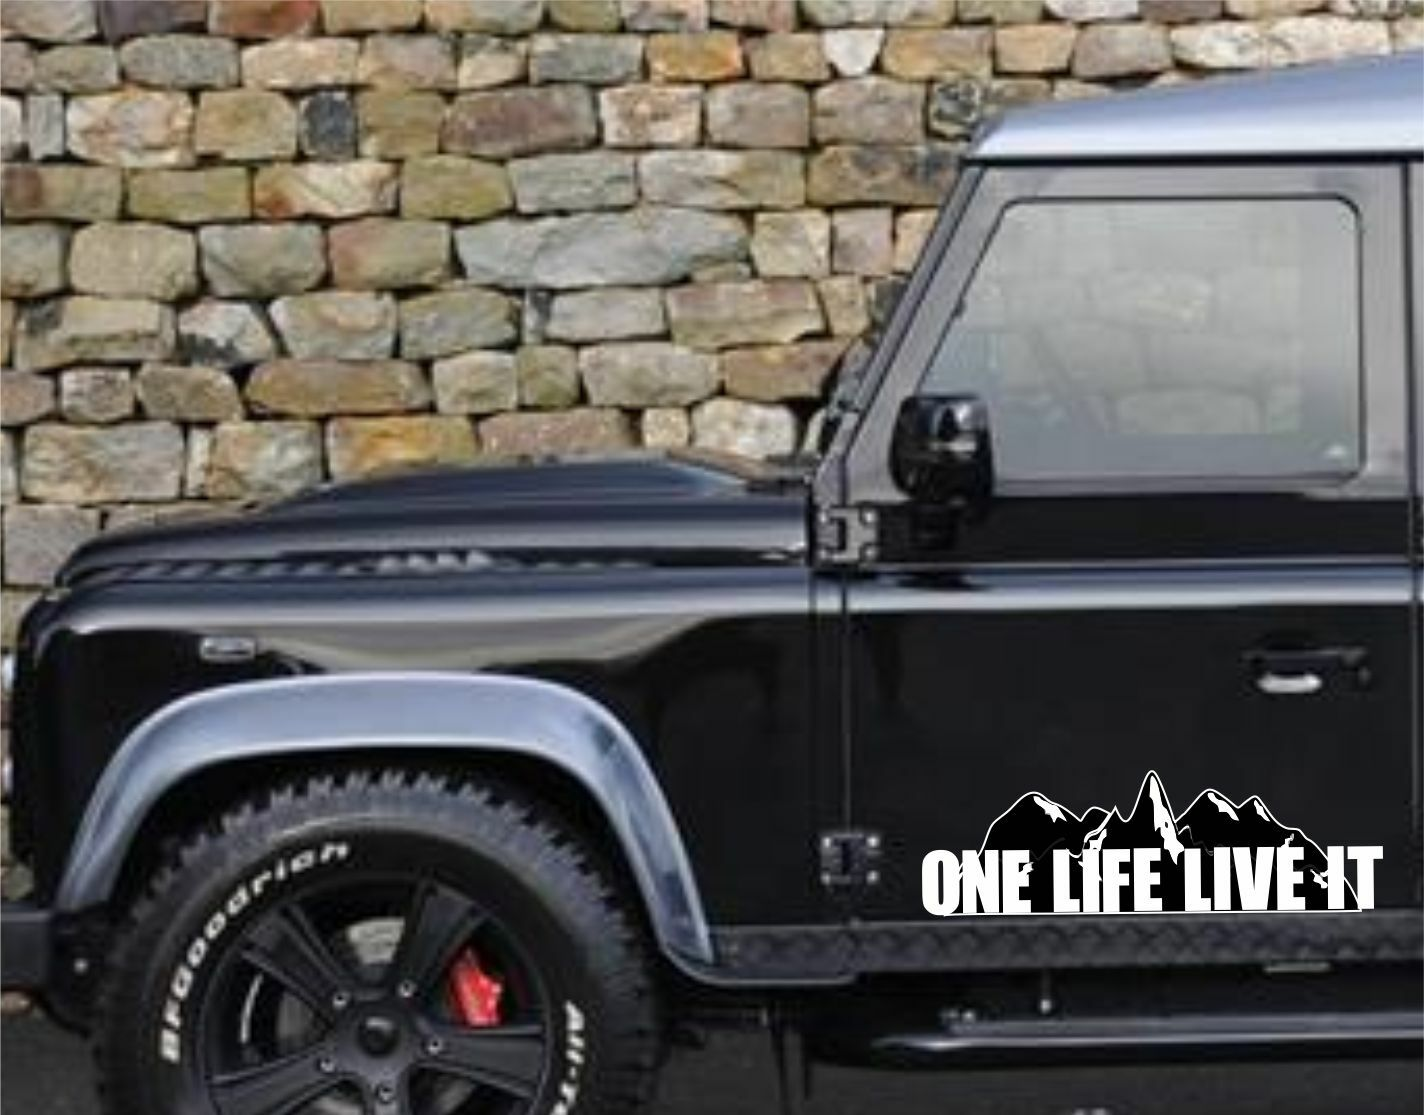 One Life Live it Jeep 4x4 Stickers 110 90 Off Roader Off Roading ATV